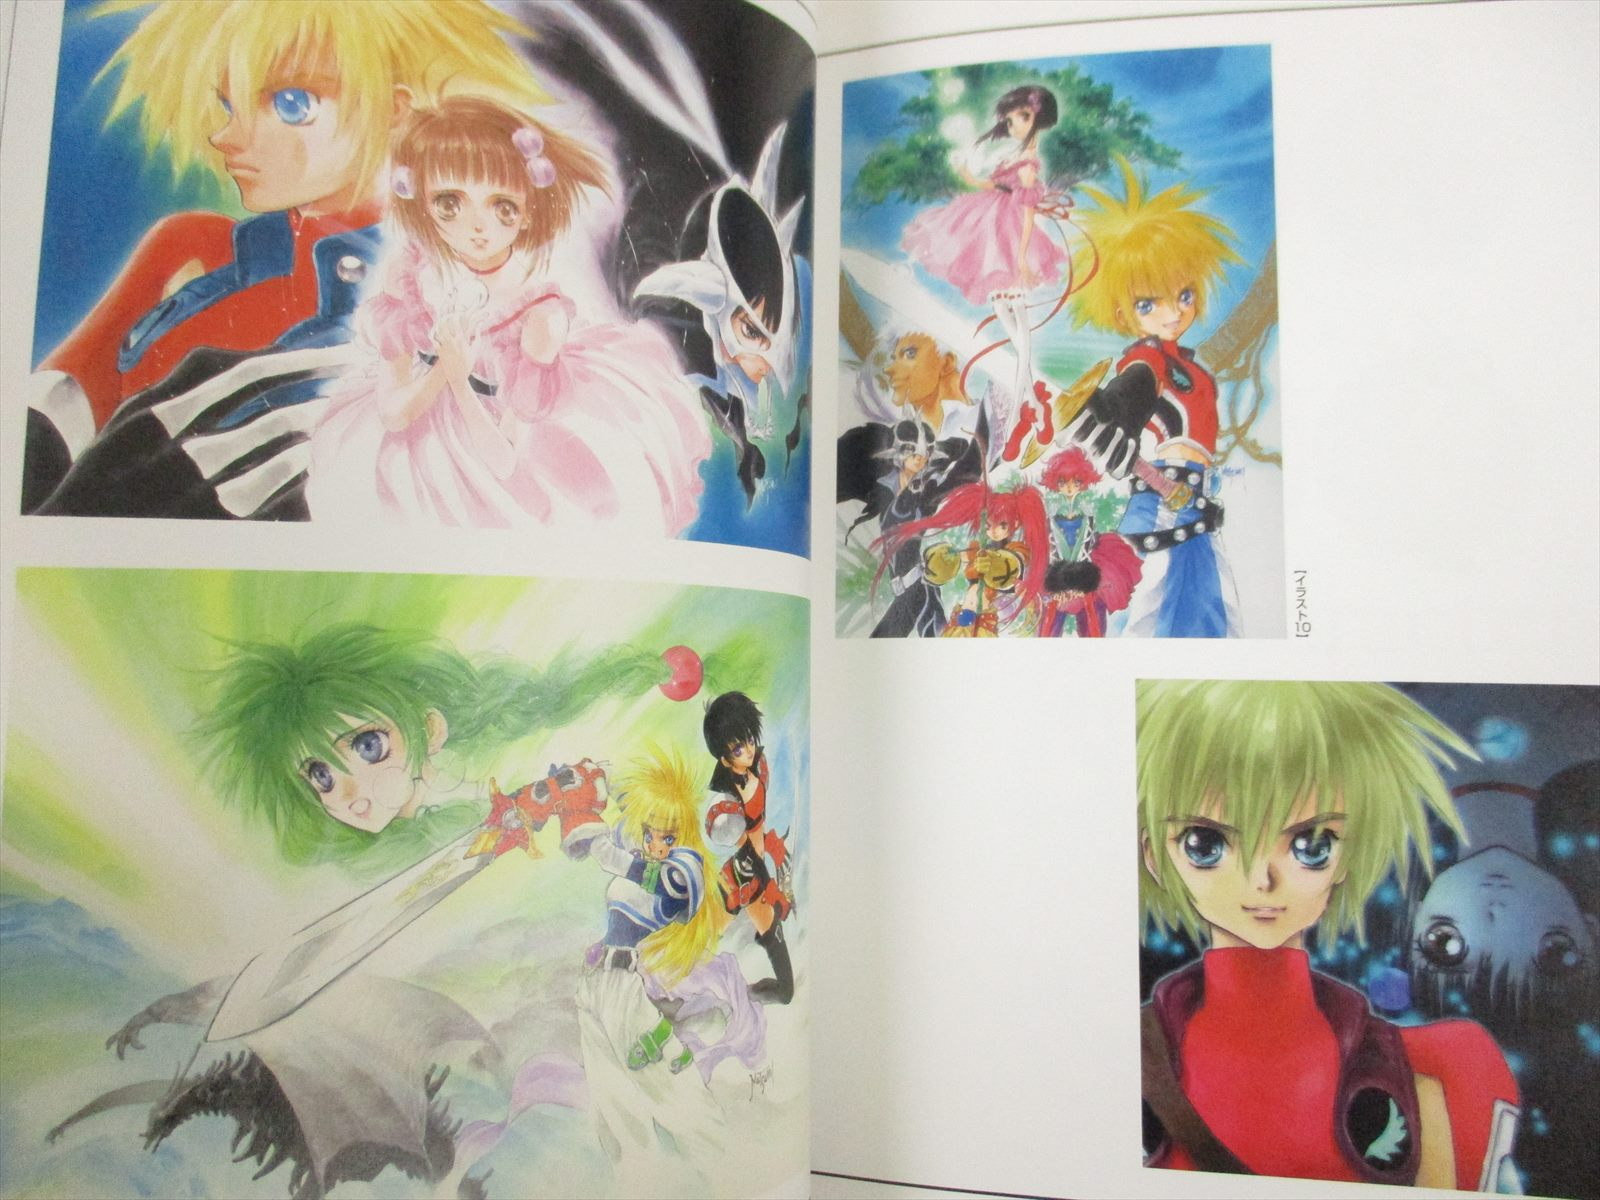 JAPAN Tales of Destiny Character Collection art book